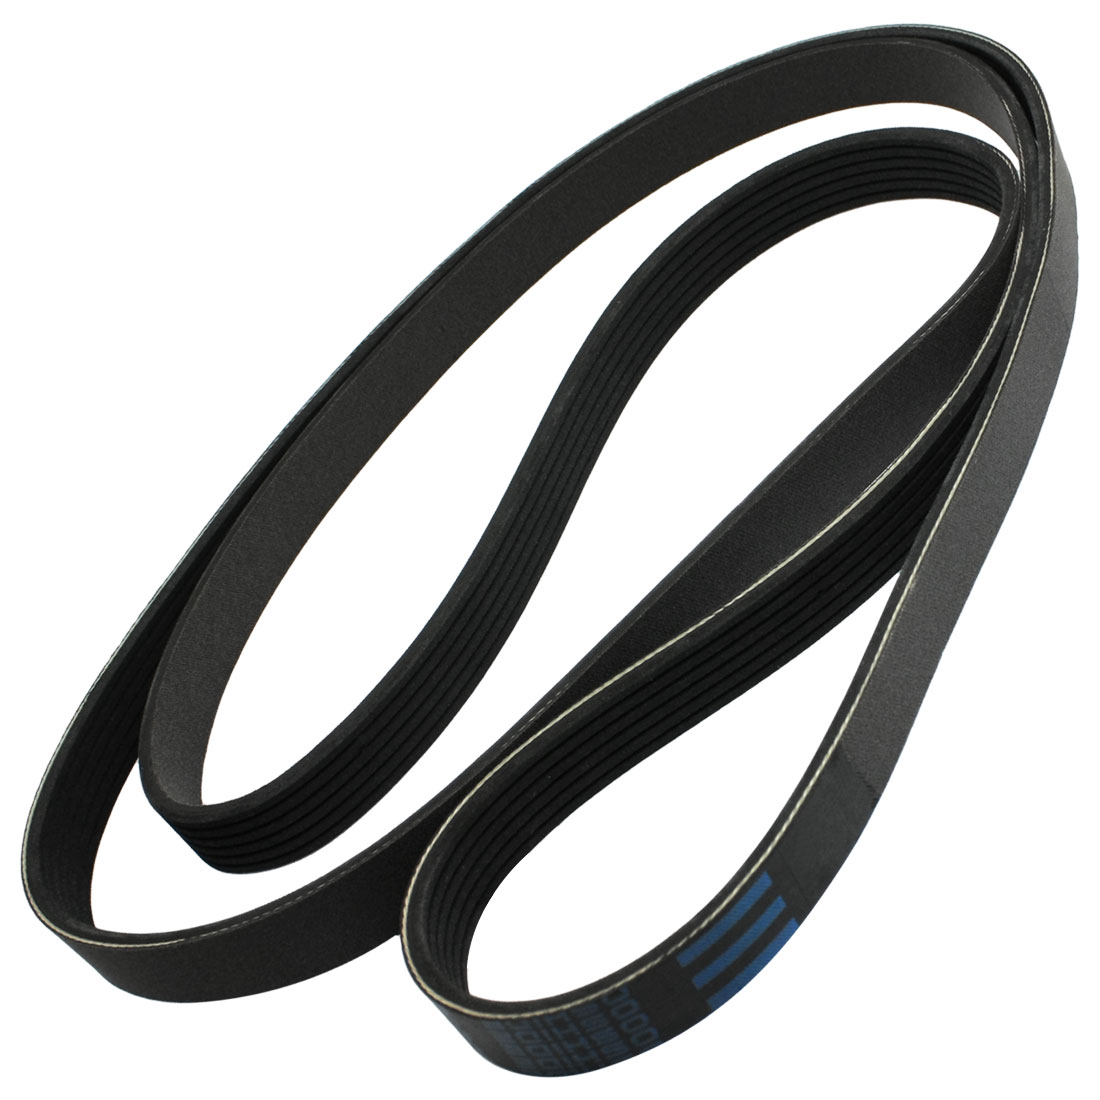 Serpentine Belt 6PK2225 for Chevrolet C1500 C2500 K1500 K2500 Suburban C3500 G30